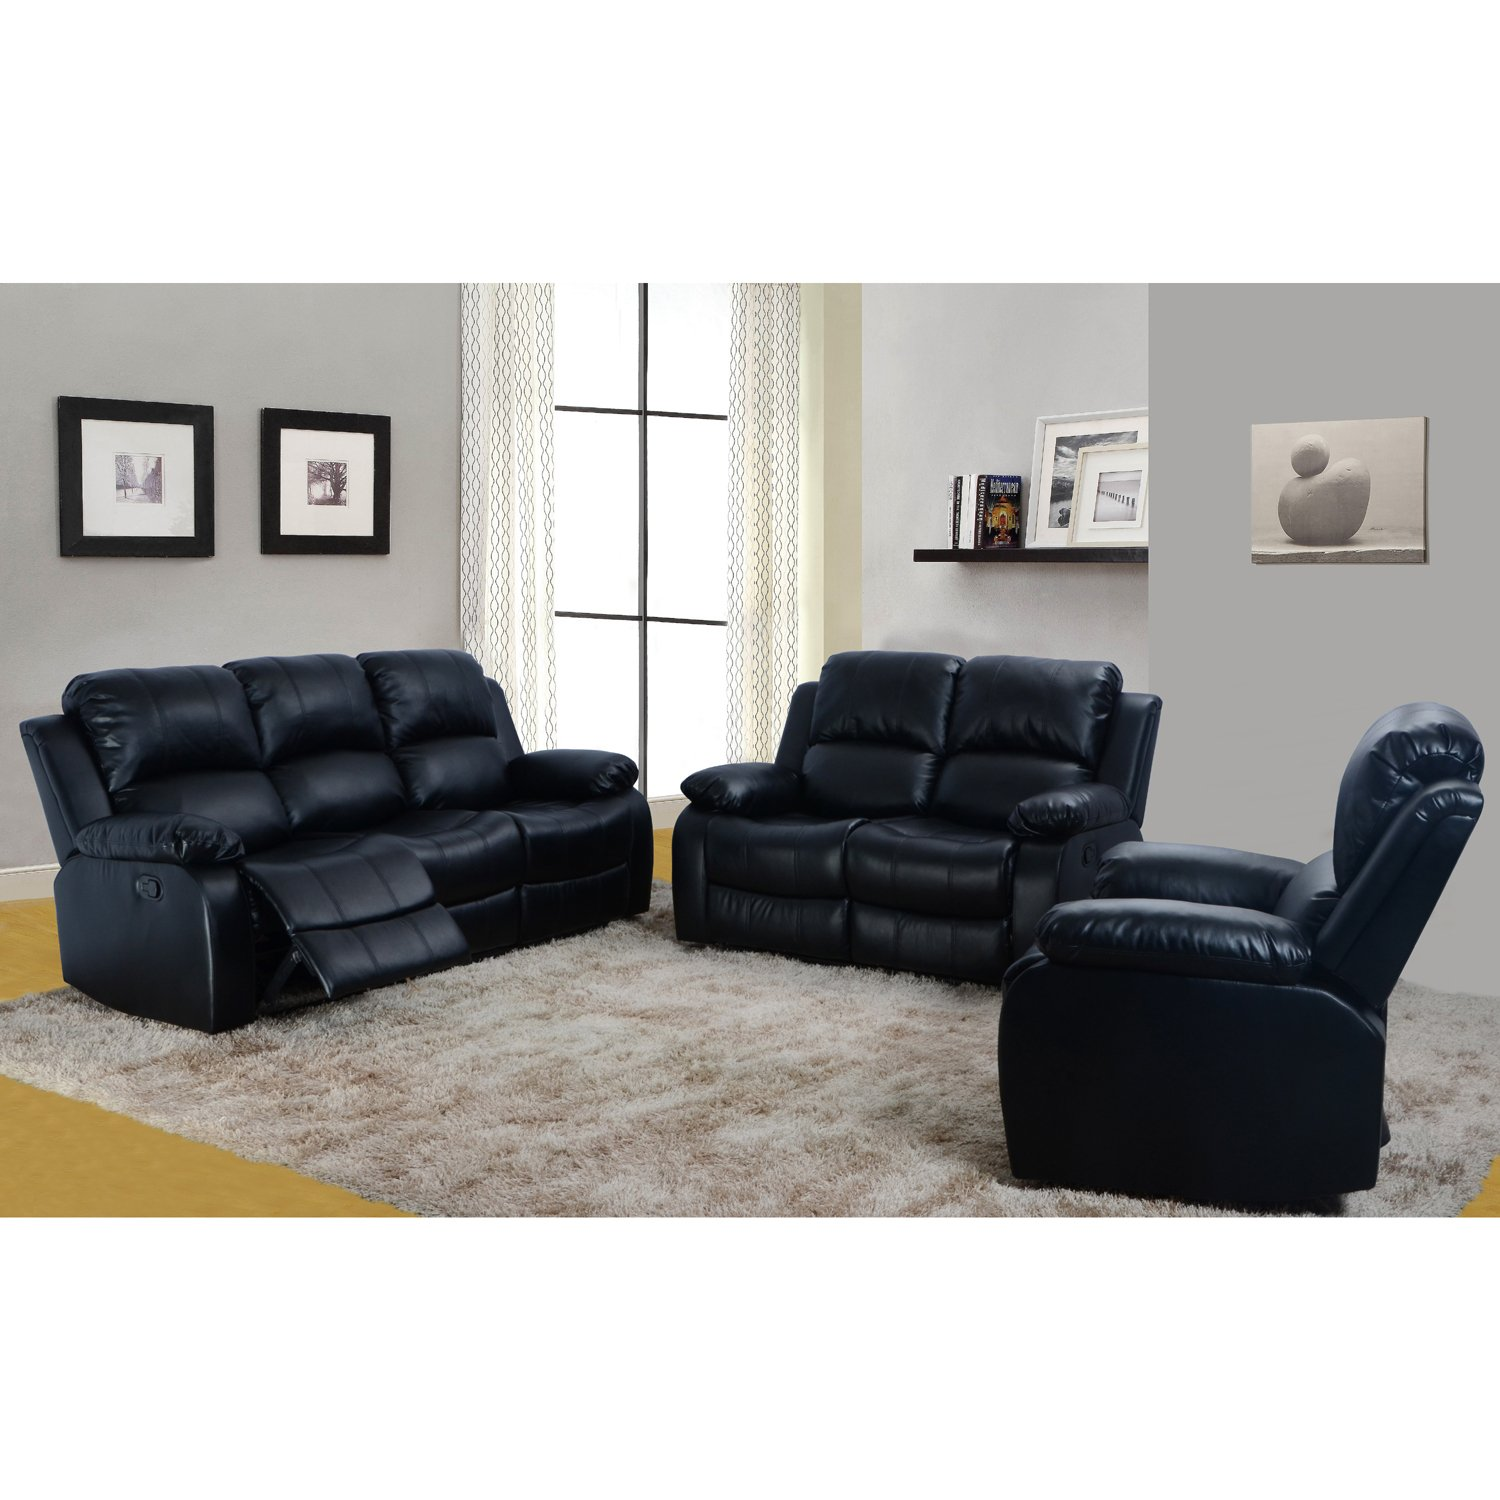 Amazon.com: LifeStyle Bonded Leather Sofa U0026 Loveseat U0026 Chair Set With 5  Recliners, Black, 3 Piece: Kitchen U0026 Dining